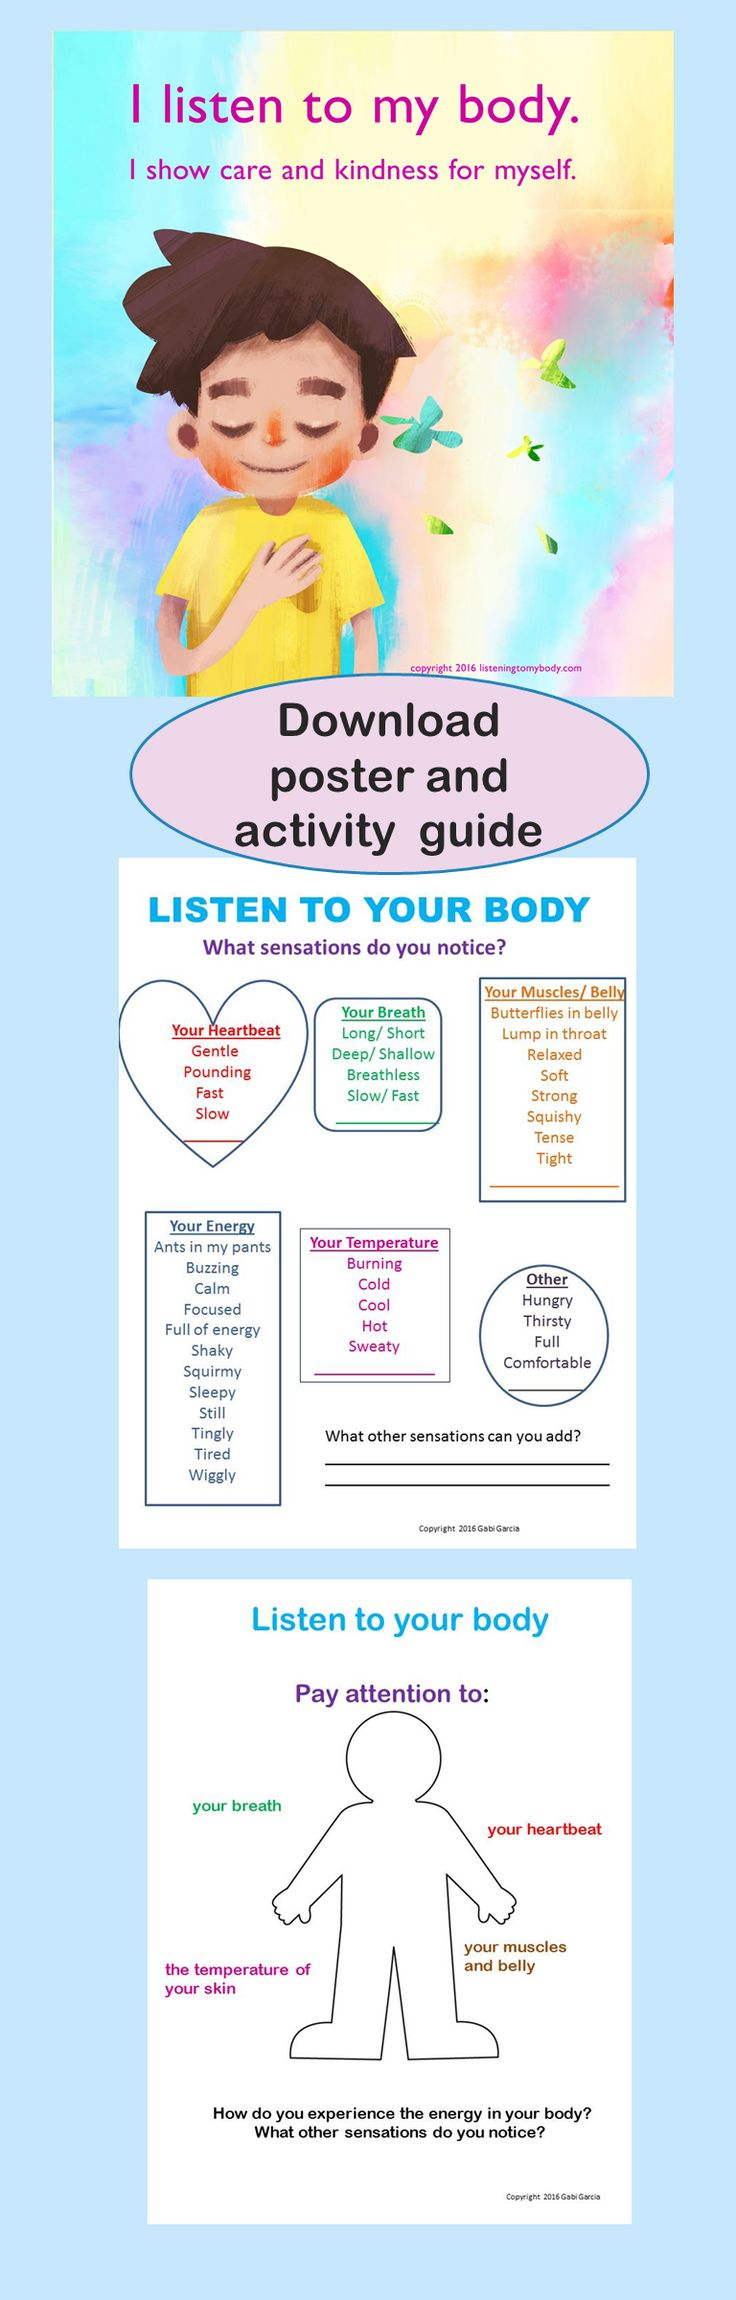 Download free poster and activity guide to support self-regulation and mindfulness practices.